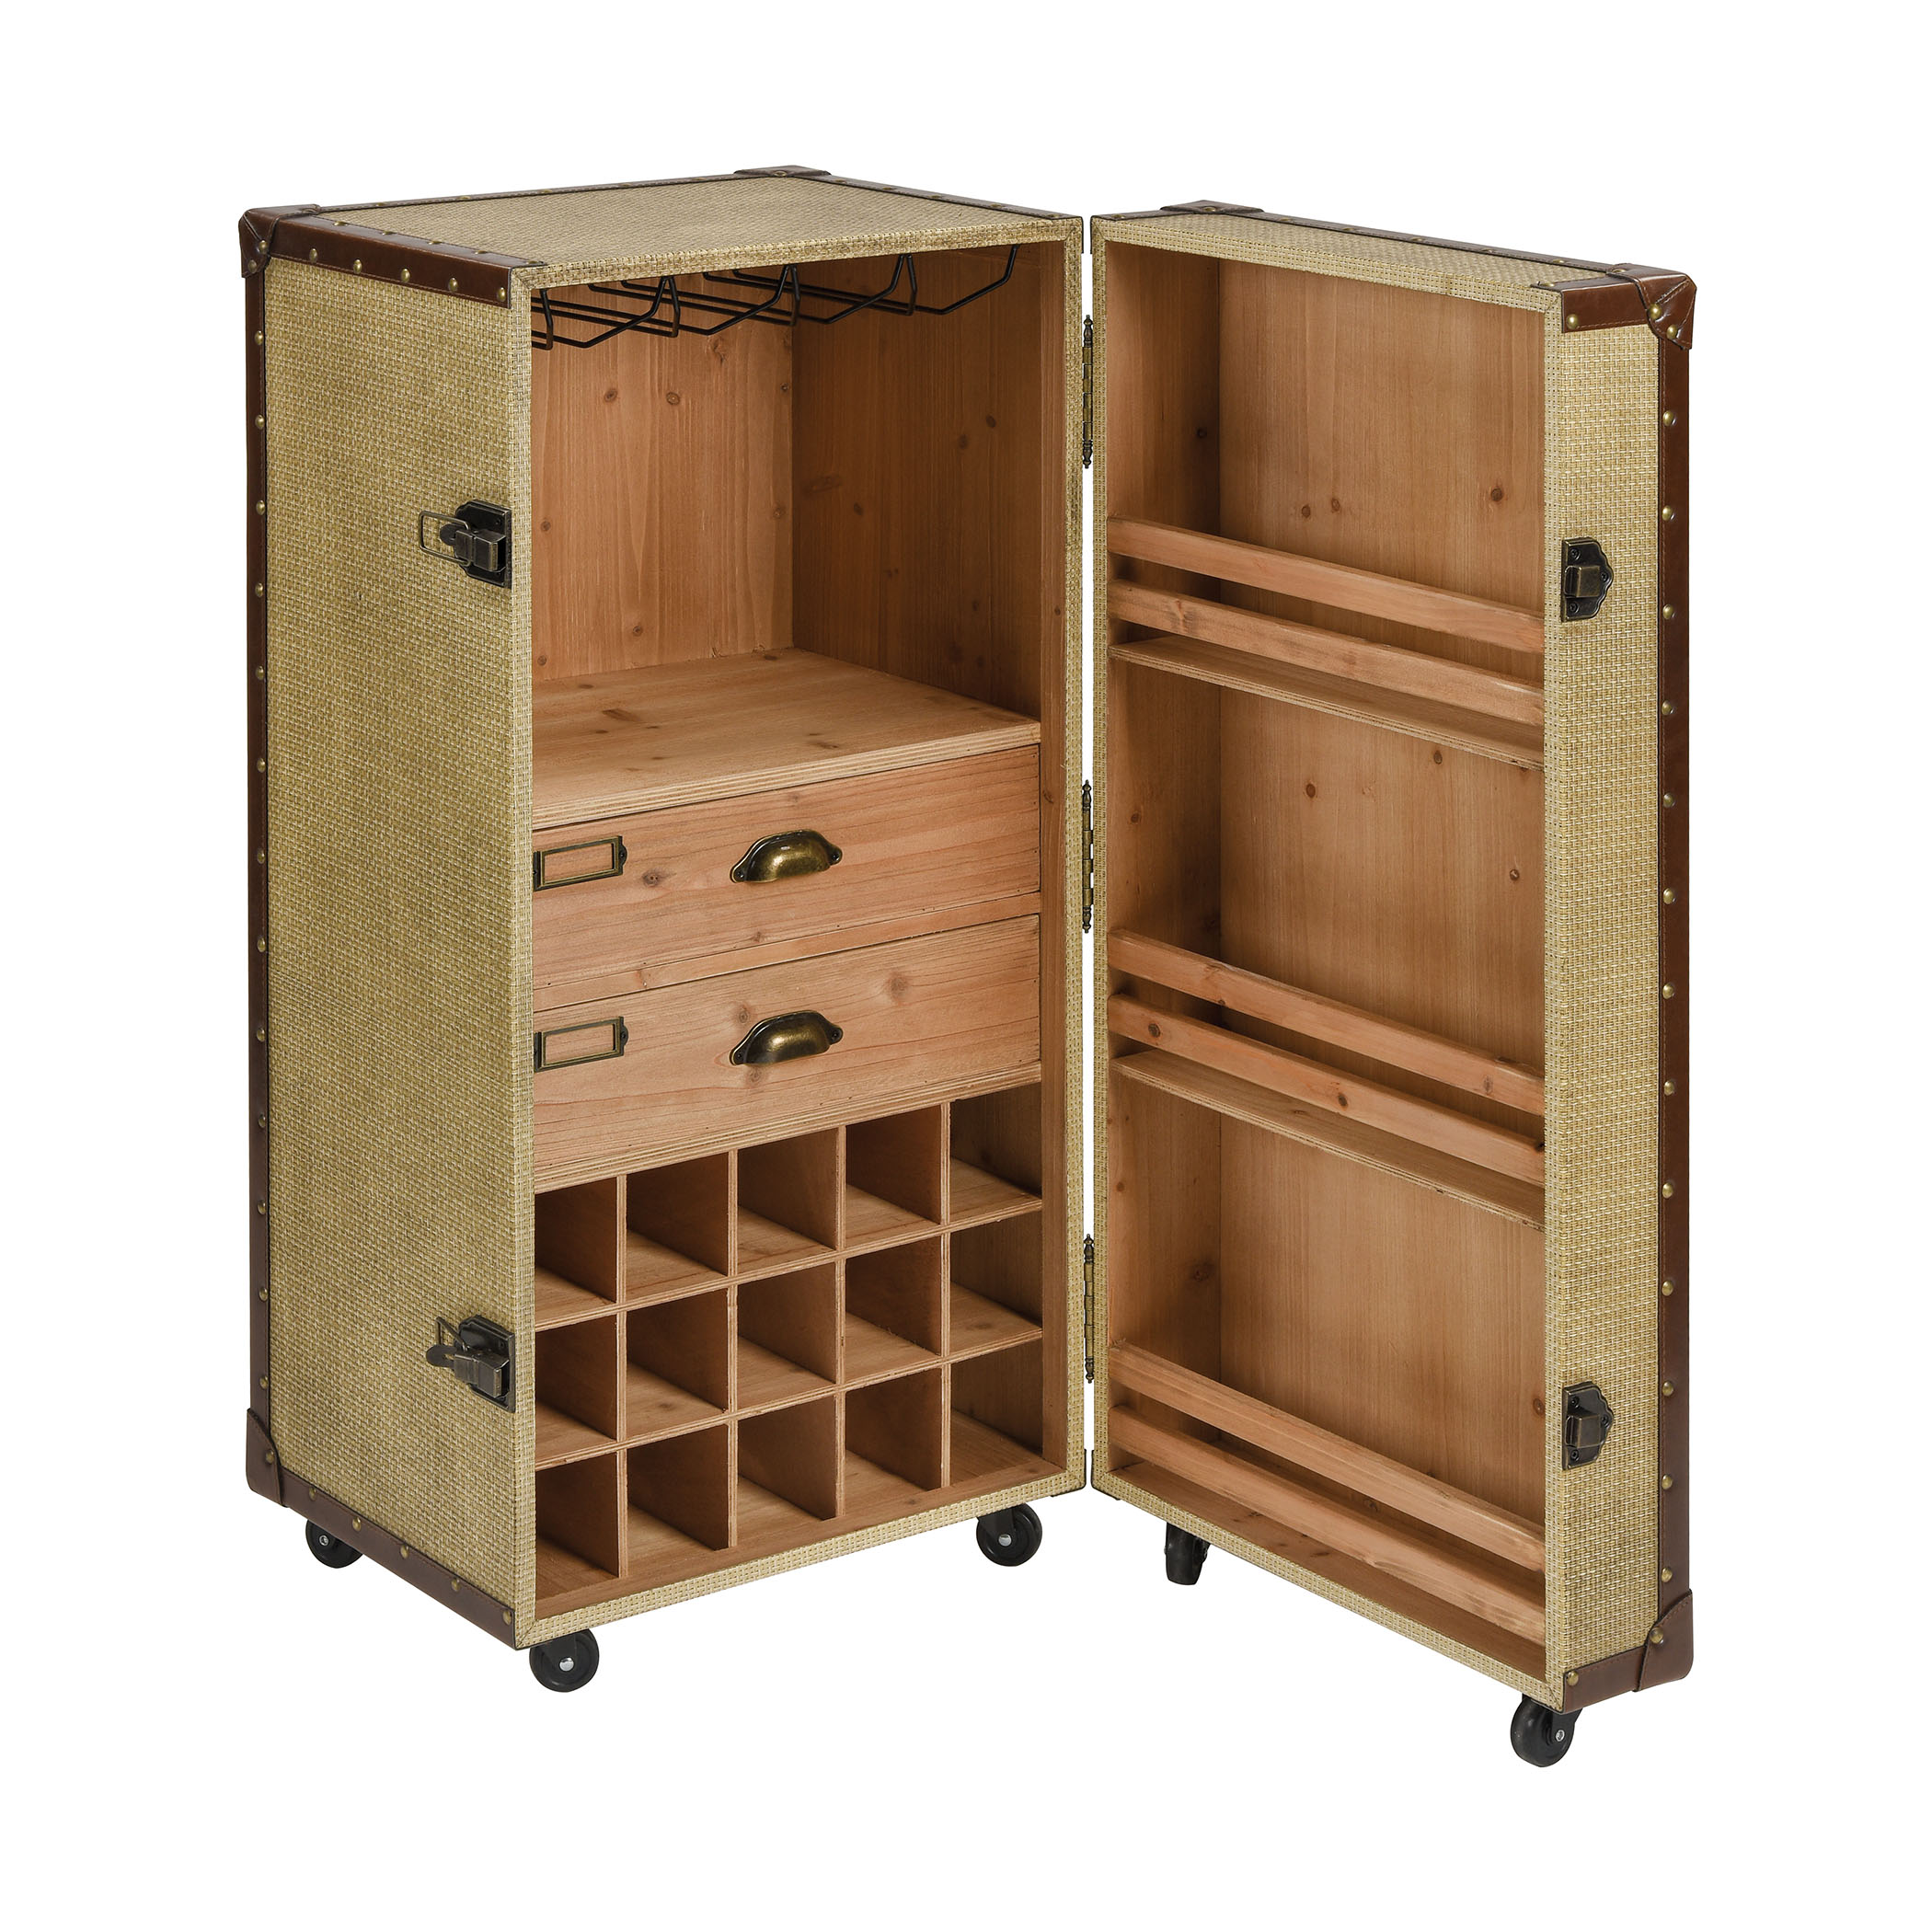 Wavertree Wine Cabinet in Antique Grey and Natural Wood Tone | Elk Home